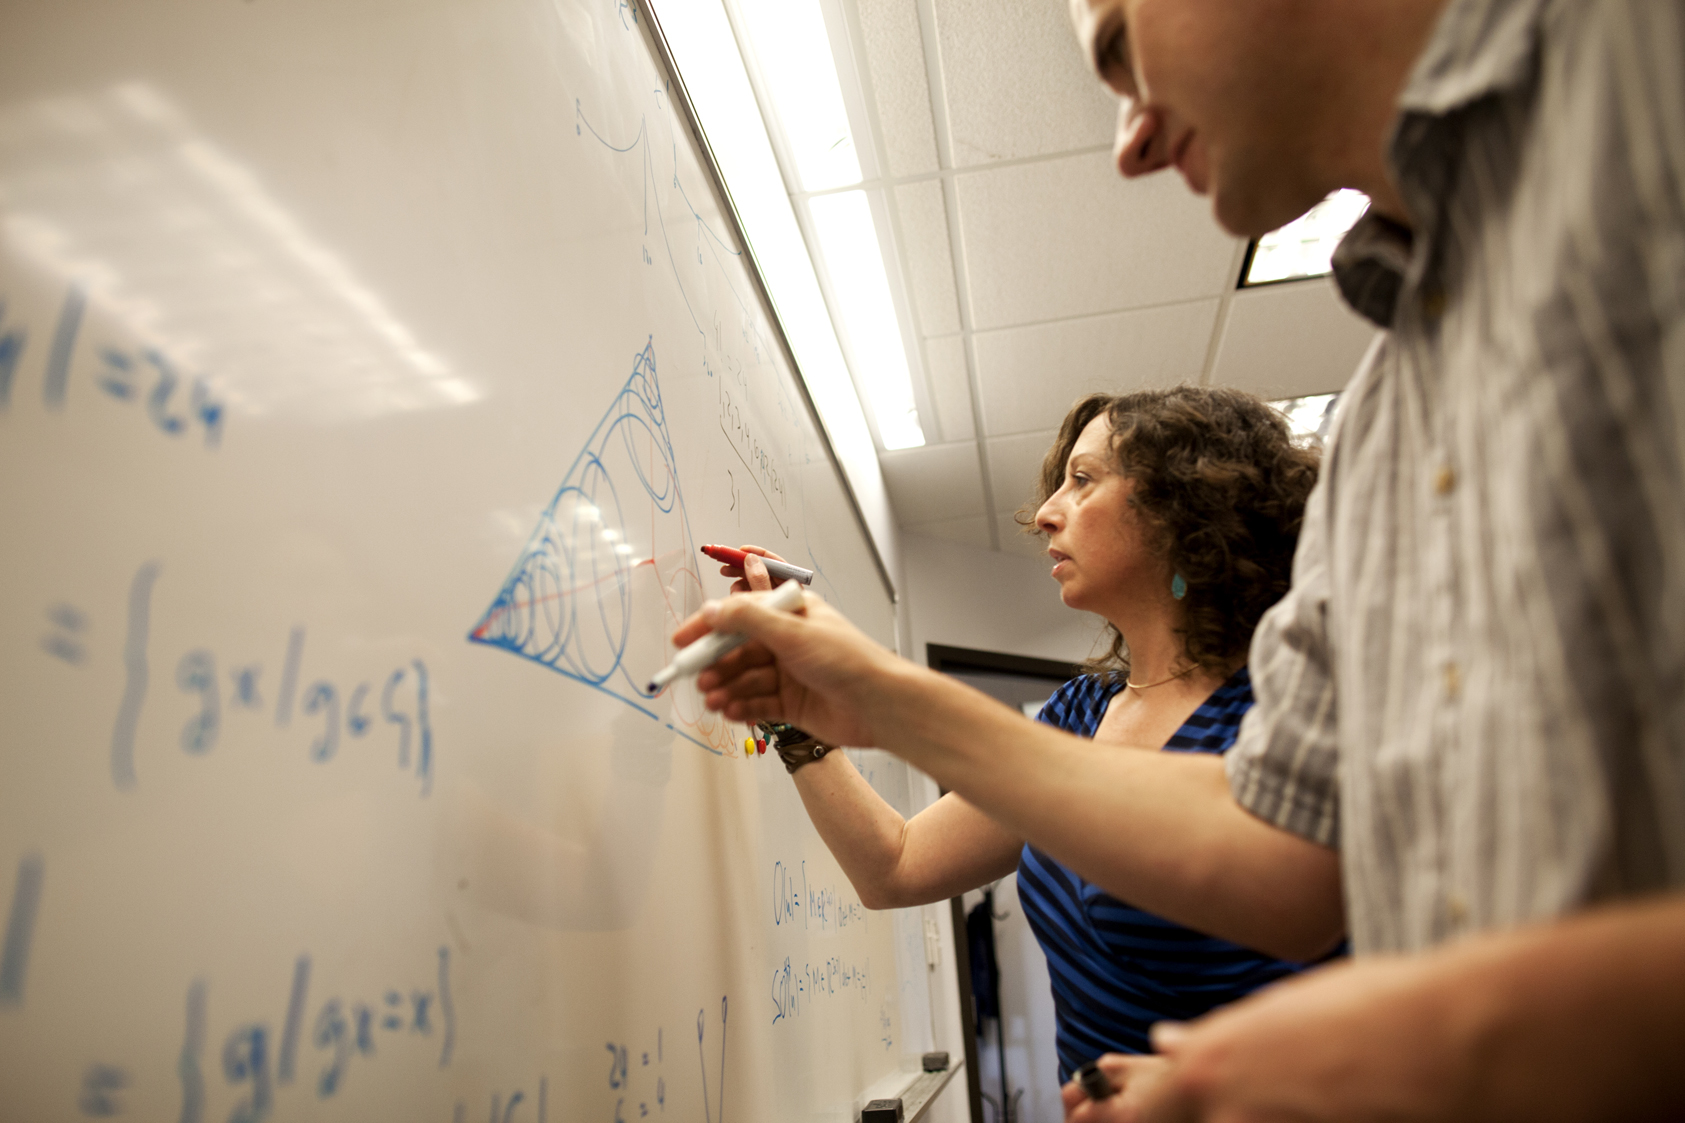 Joshua Anderson (left) and Sharon Glotzer, members of The Glotzer Group in the Laboratory for Computational Nanoscience & Soft Matter, demonstrate their new mathematical problem: the best way to fill a space with overlapping shapes while respecting the boundary. Image credit: Joseph Xu, College of Engineering